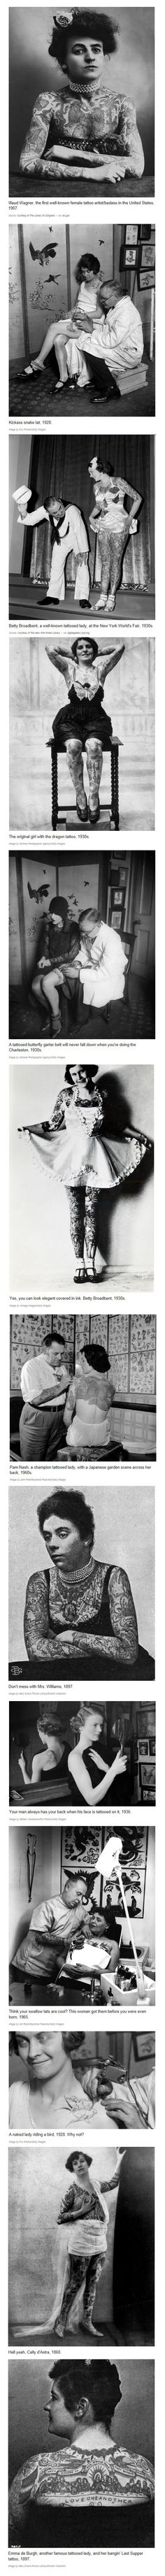 Totally Cool Vintage Photos of Women with Tattoos | Mommy Has A Potty MouthMommy Has A Potty Mouth